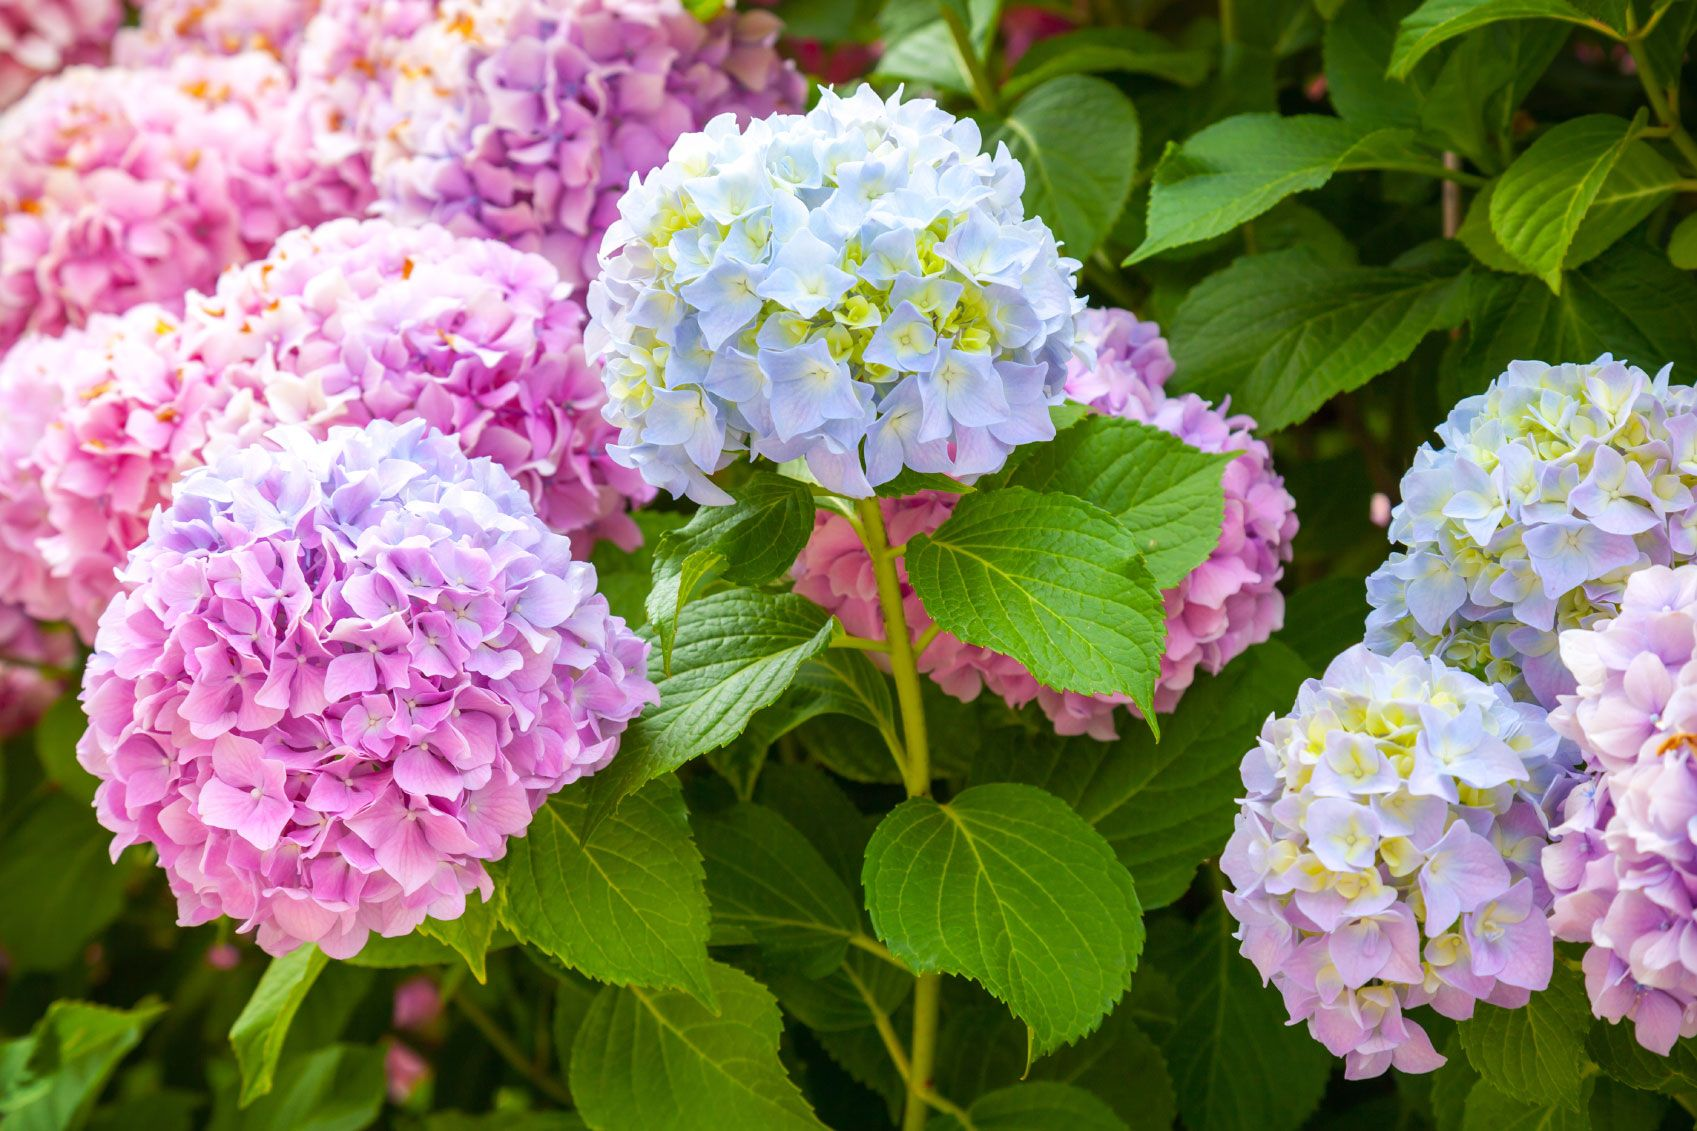 Hydrangea Color How Do I Change The Color Of A Hydrangea Hydrangea Care Hydrangea Colors Hydrangea Not Blooming